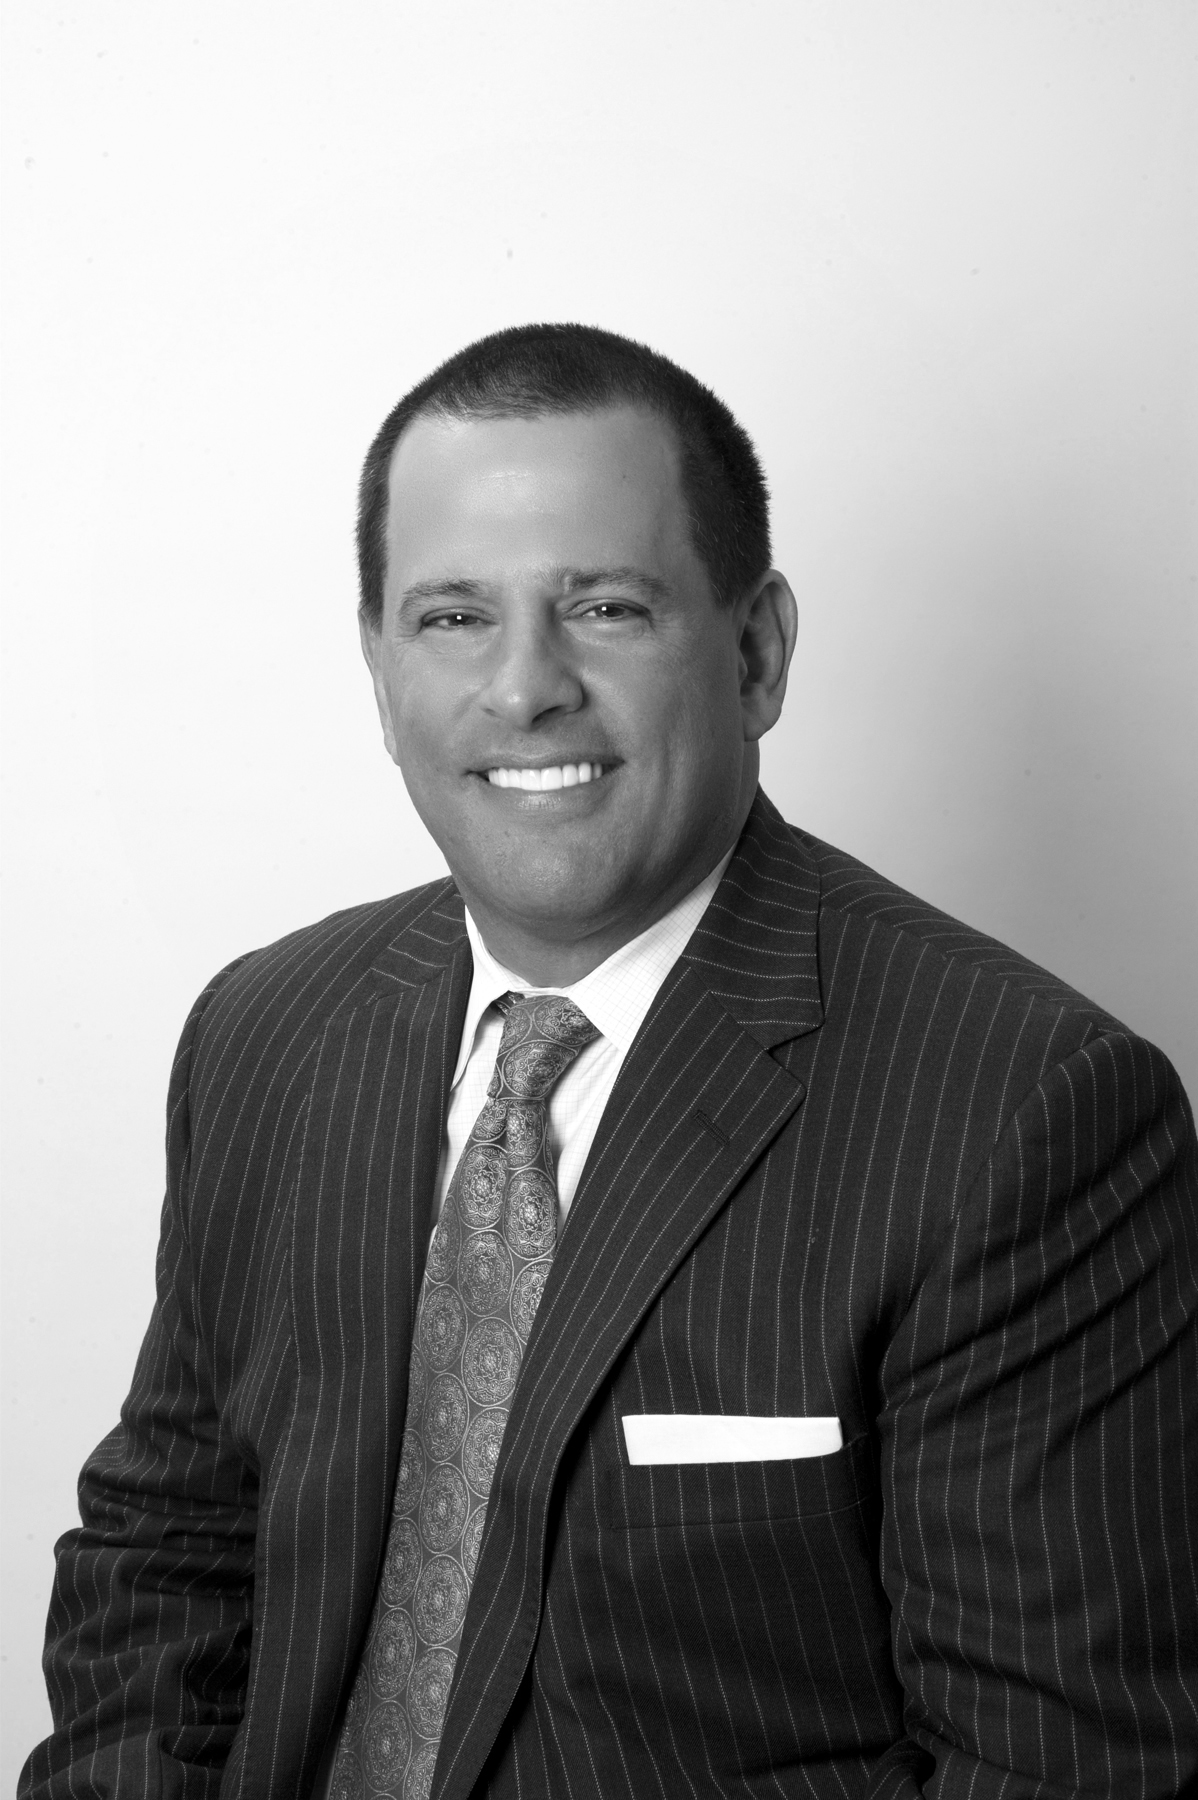 Christopher McMahon, financial advisor Sewickley PA